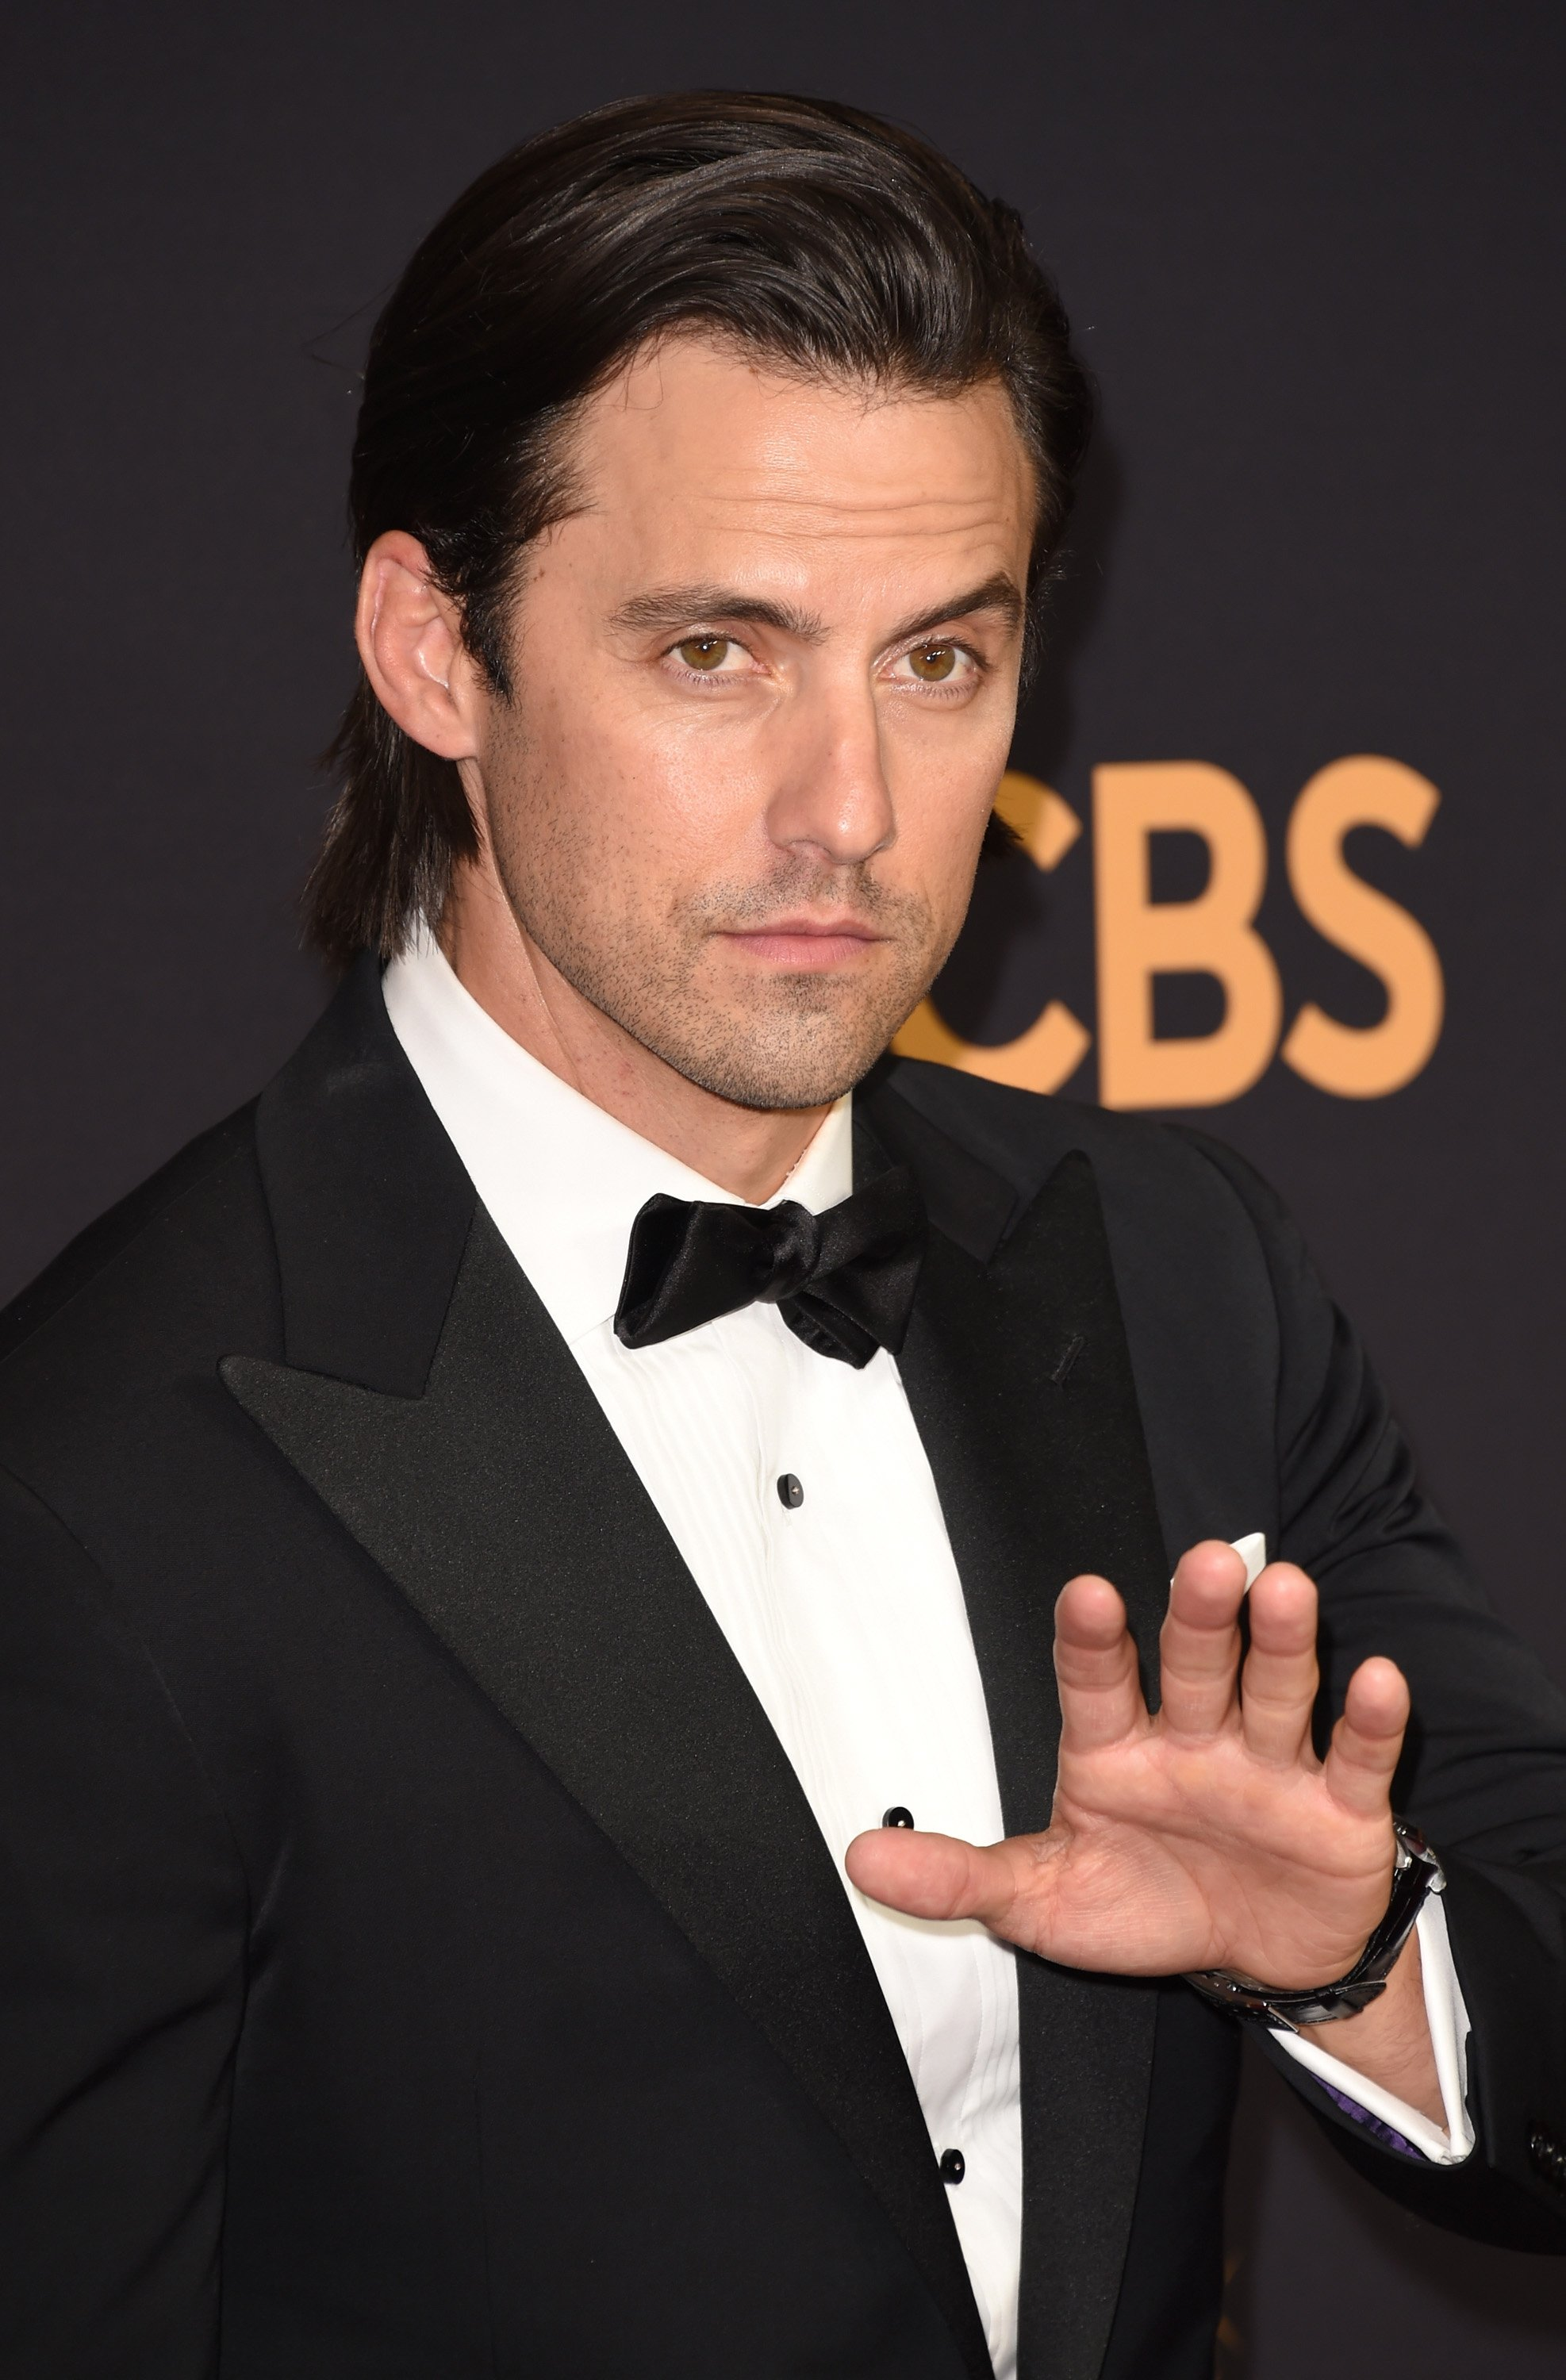 Milo Ventimiglia pictured at the 69th Annual Primetime Emmy Awards at Microsoft Theater, 2017, California. | Photo: Getty Images